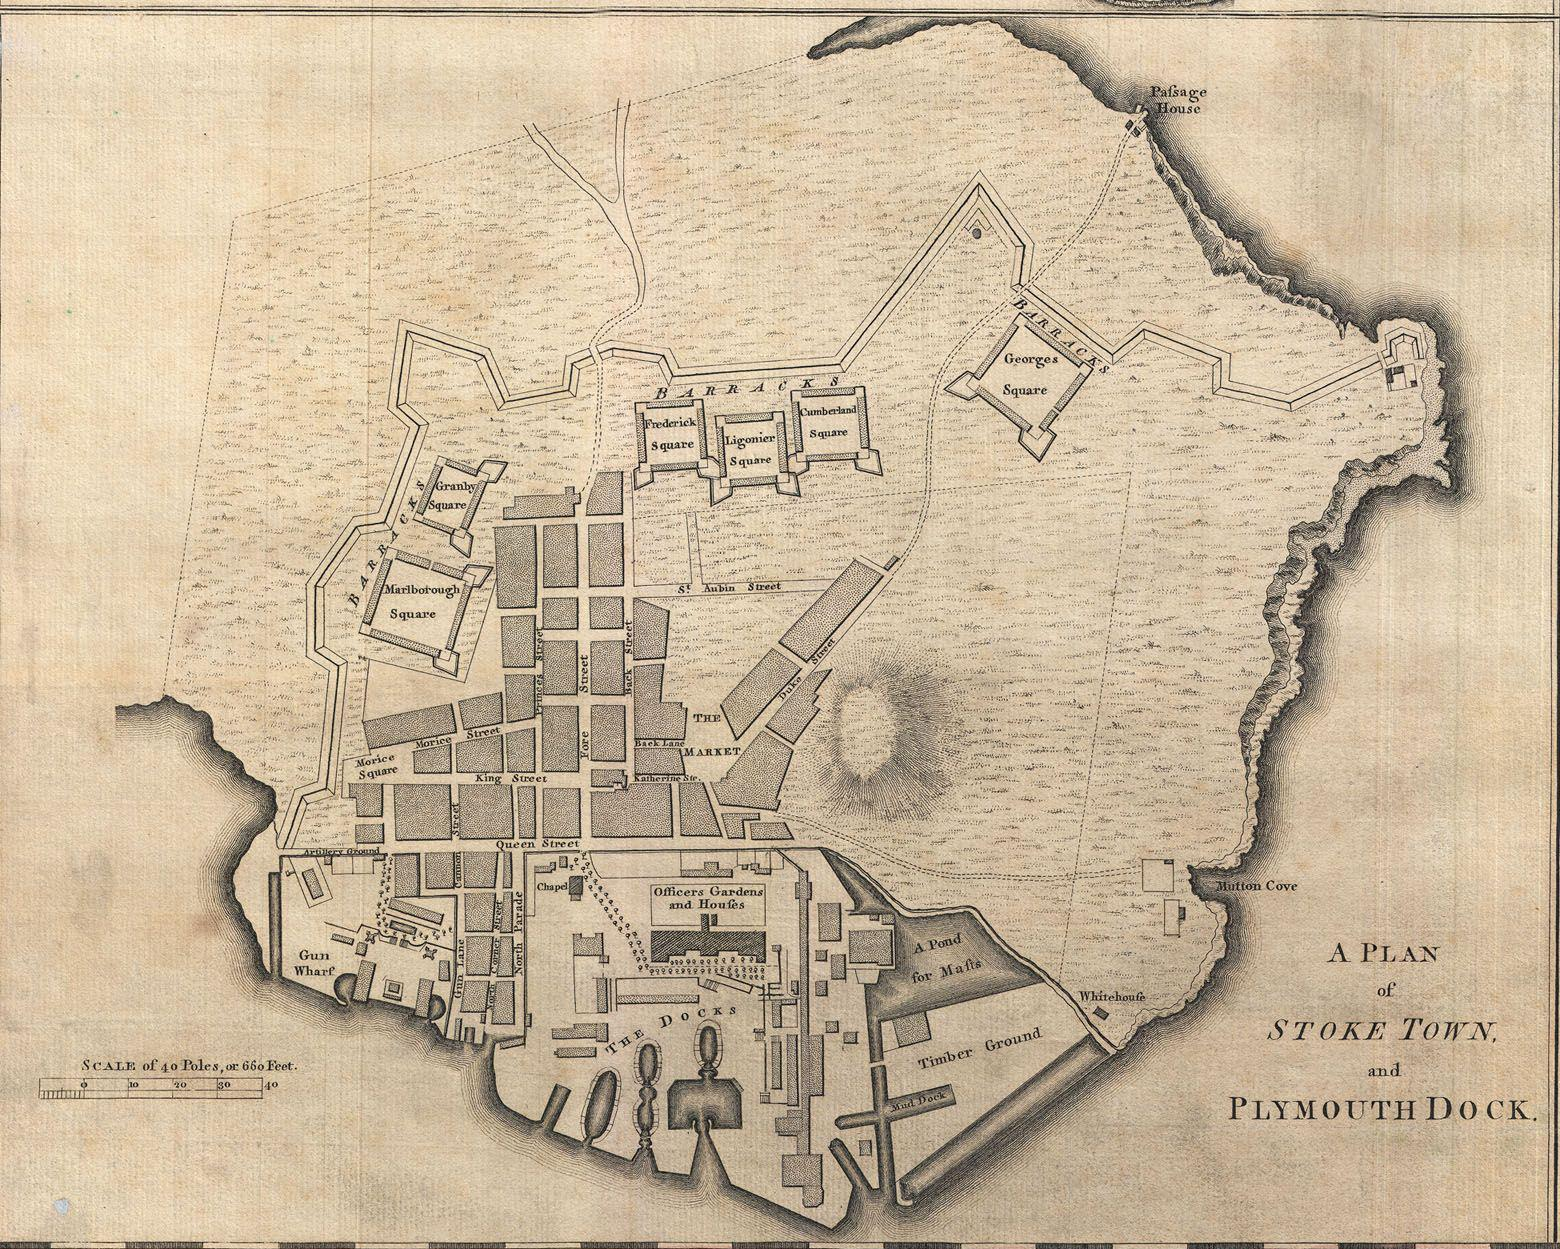 File:Plan of Stoke Town and Plymouth Dock - Benjamin Donn, 1765.jpg